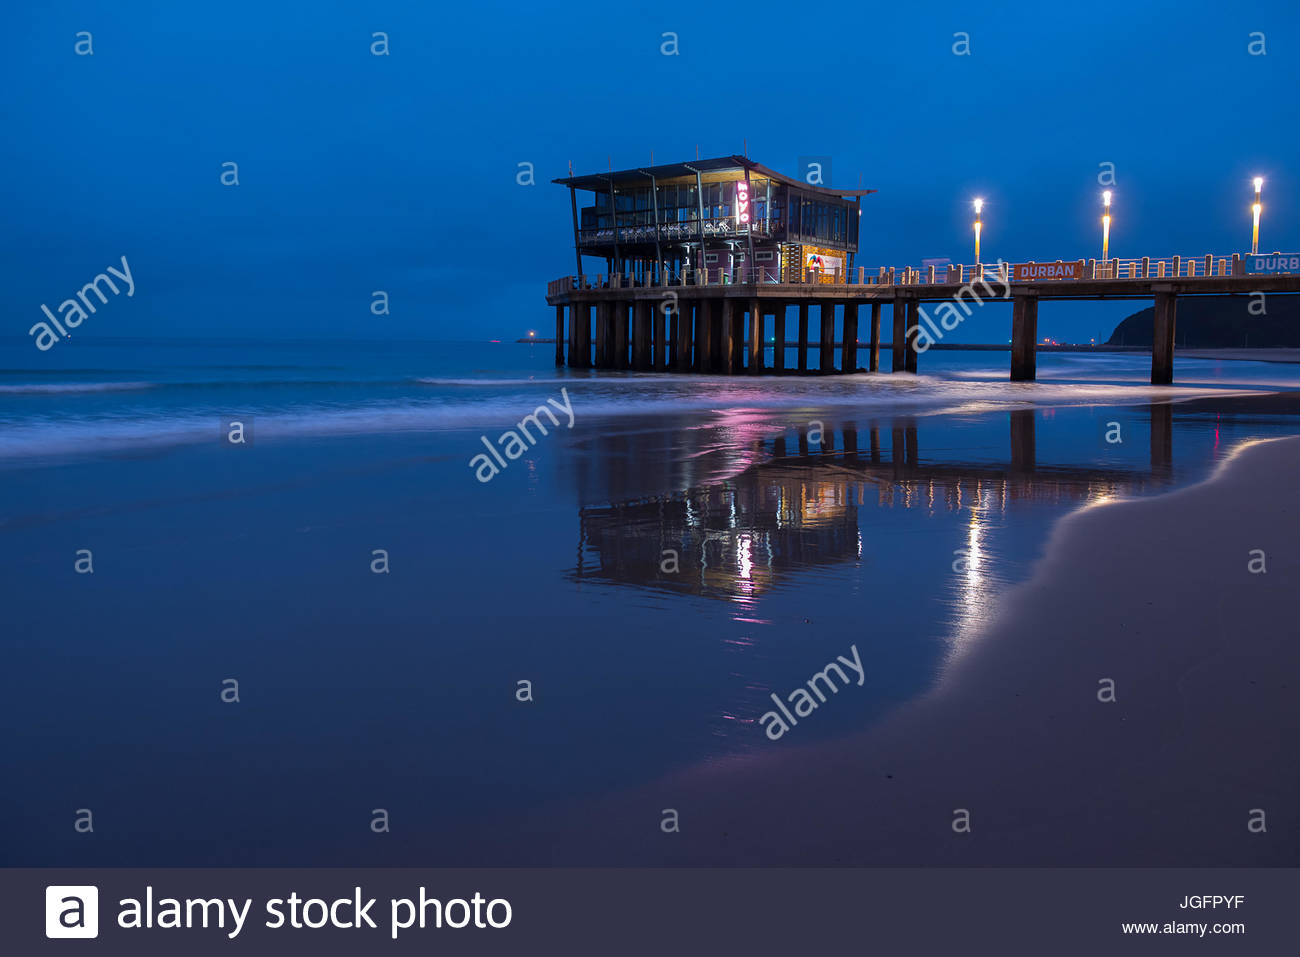 The two story glass Moyo Shaka restaurant offers diners unparalleled views of the Indian Ocean. - Stock Image